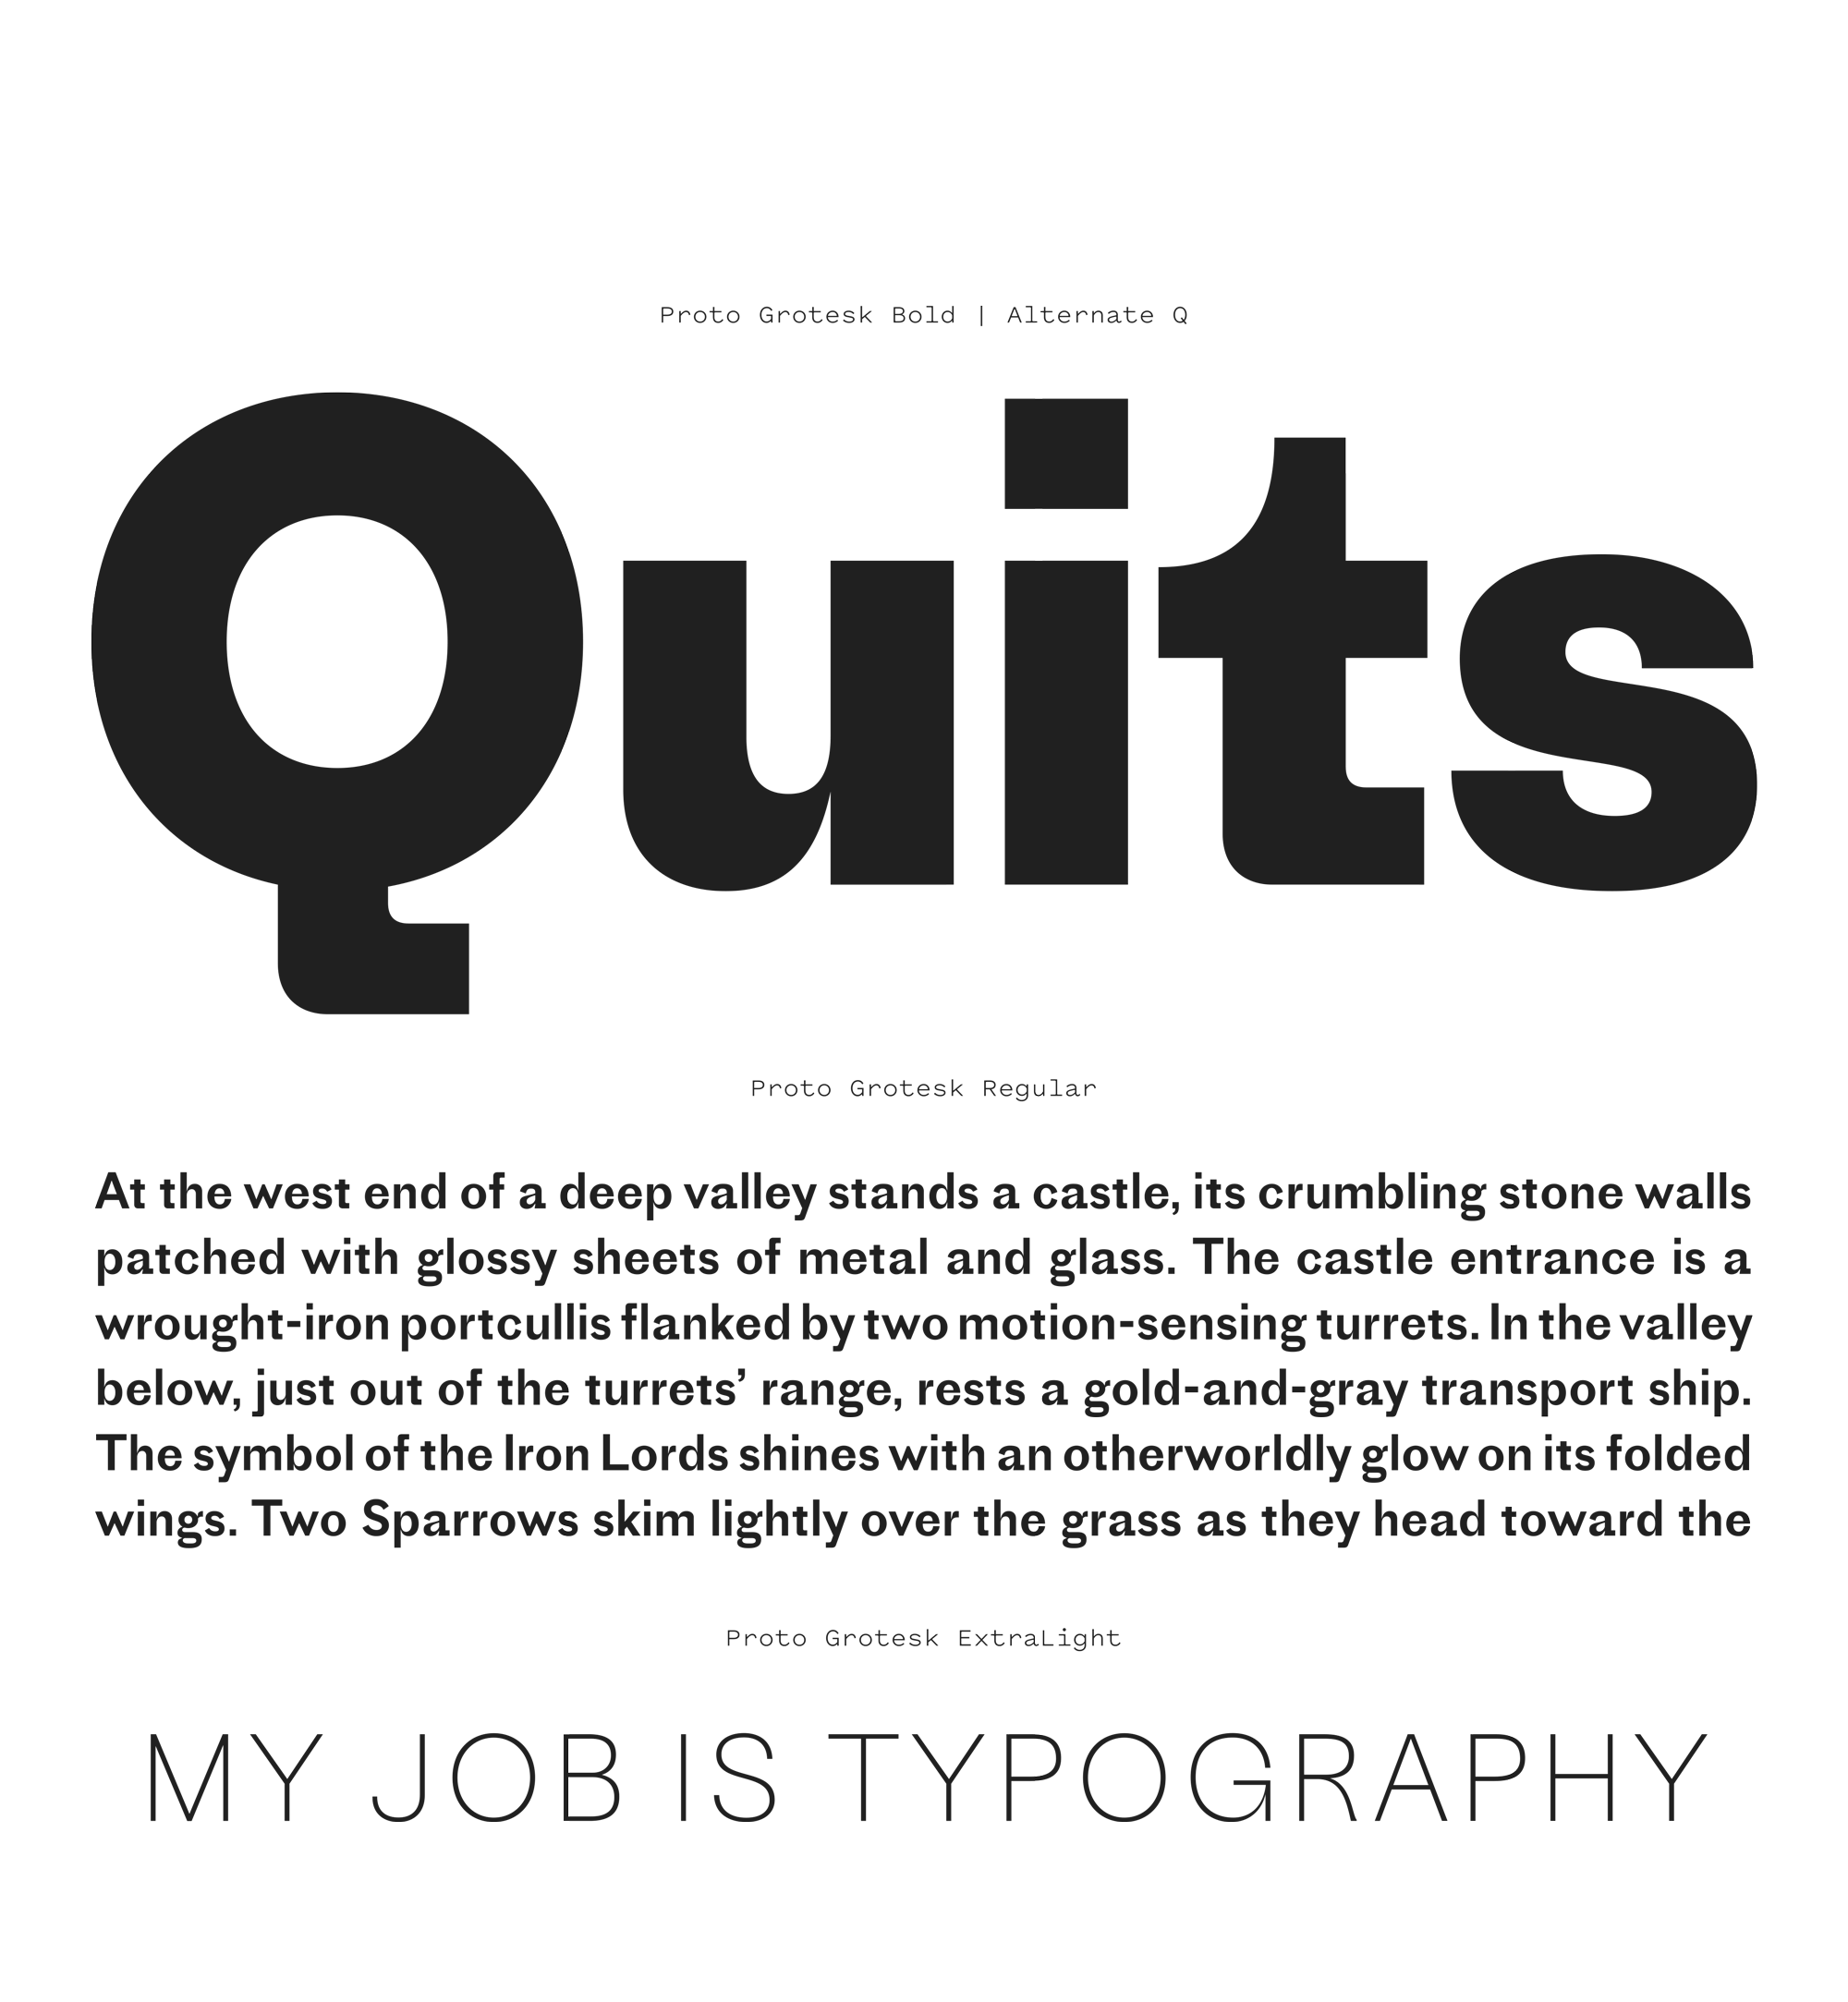 Proto Grotesk Font Review Journal